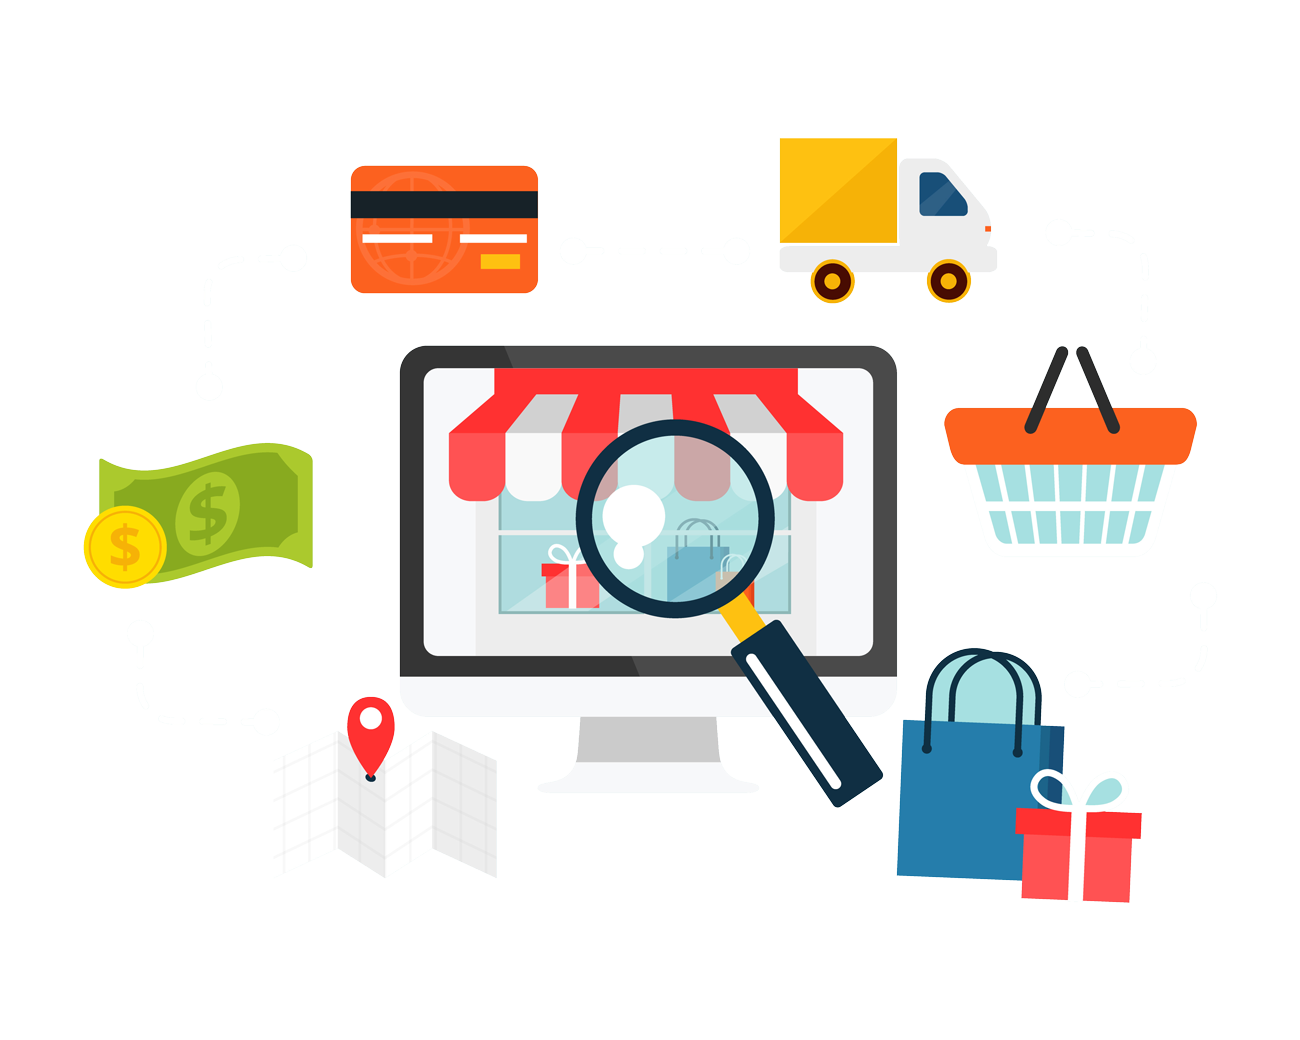 Website clipart web development. Ecommerce in los angles